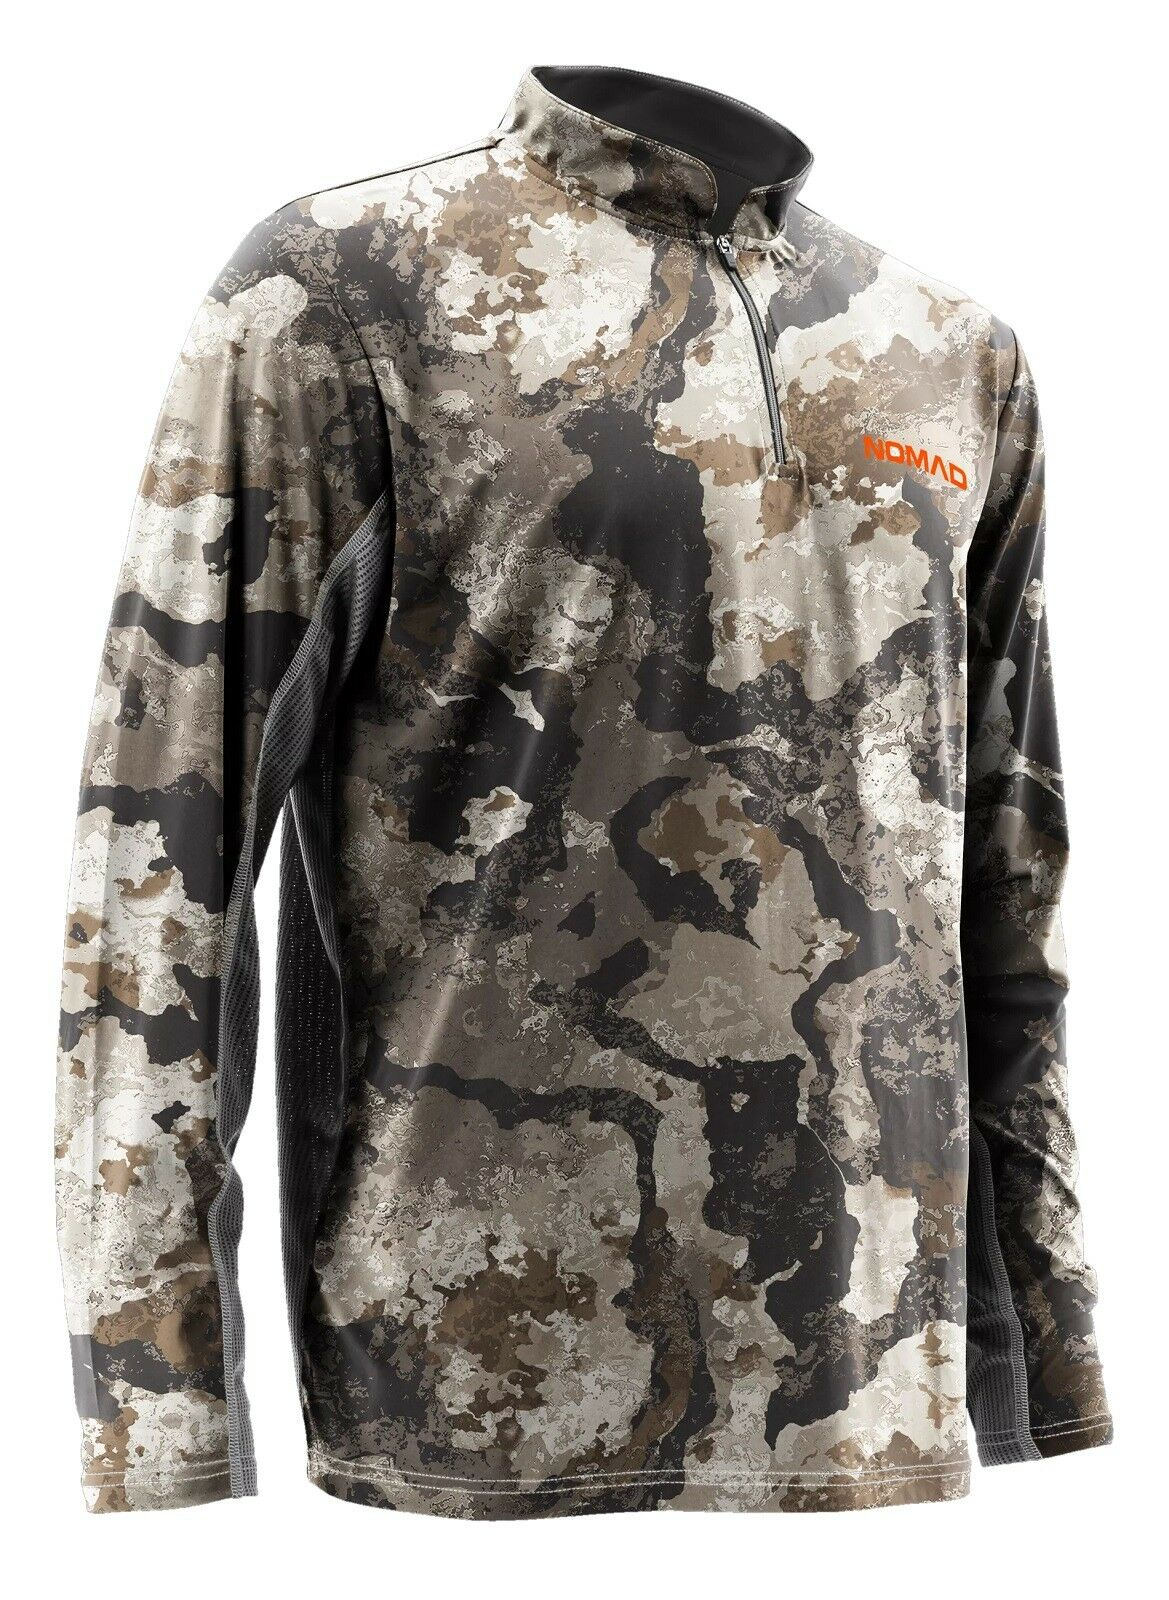 Nomad  Men's Performance Cooling Long Sleeve 1 4 Zip Camo Hunting Shirt N1200005  factory direct and quick delivery